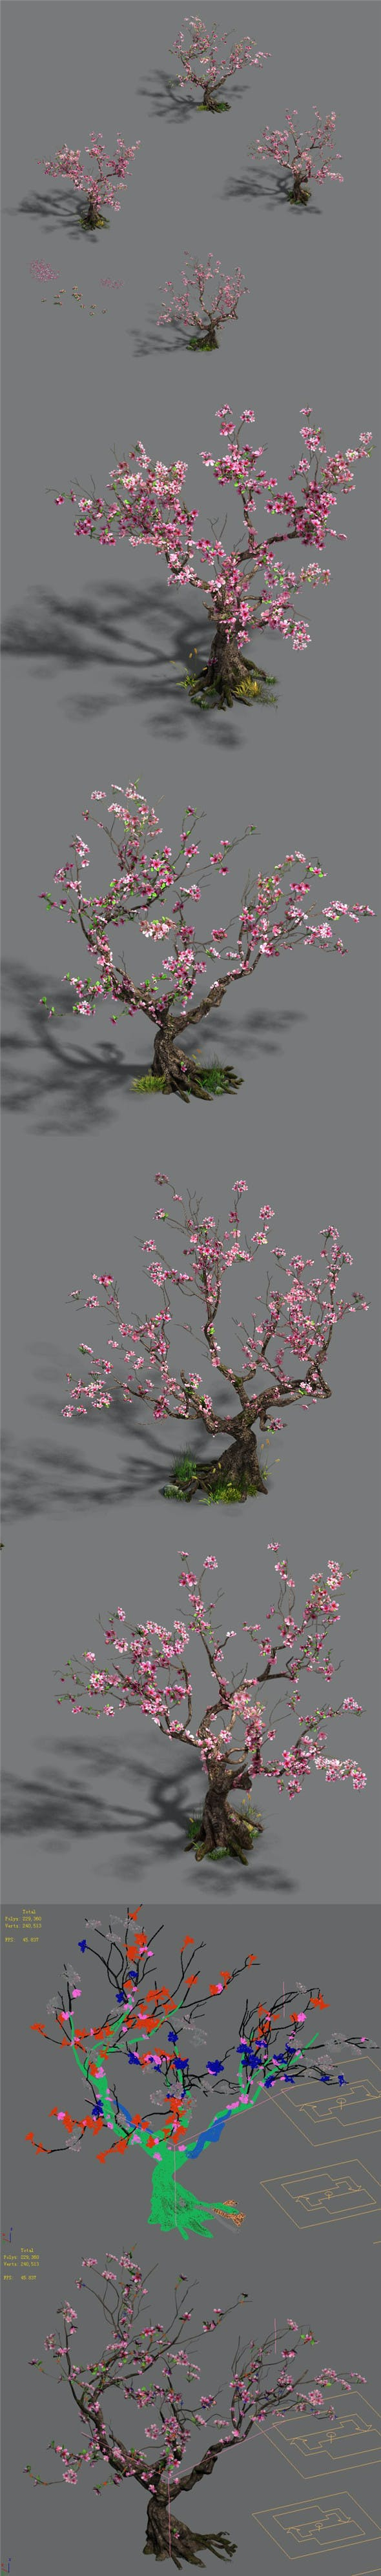 Forest - Peach Blossom Tree 21 - 3DOcean Item for Sale